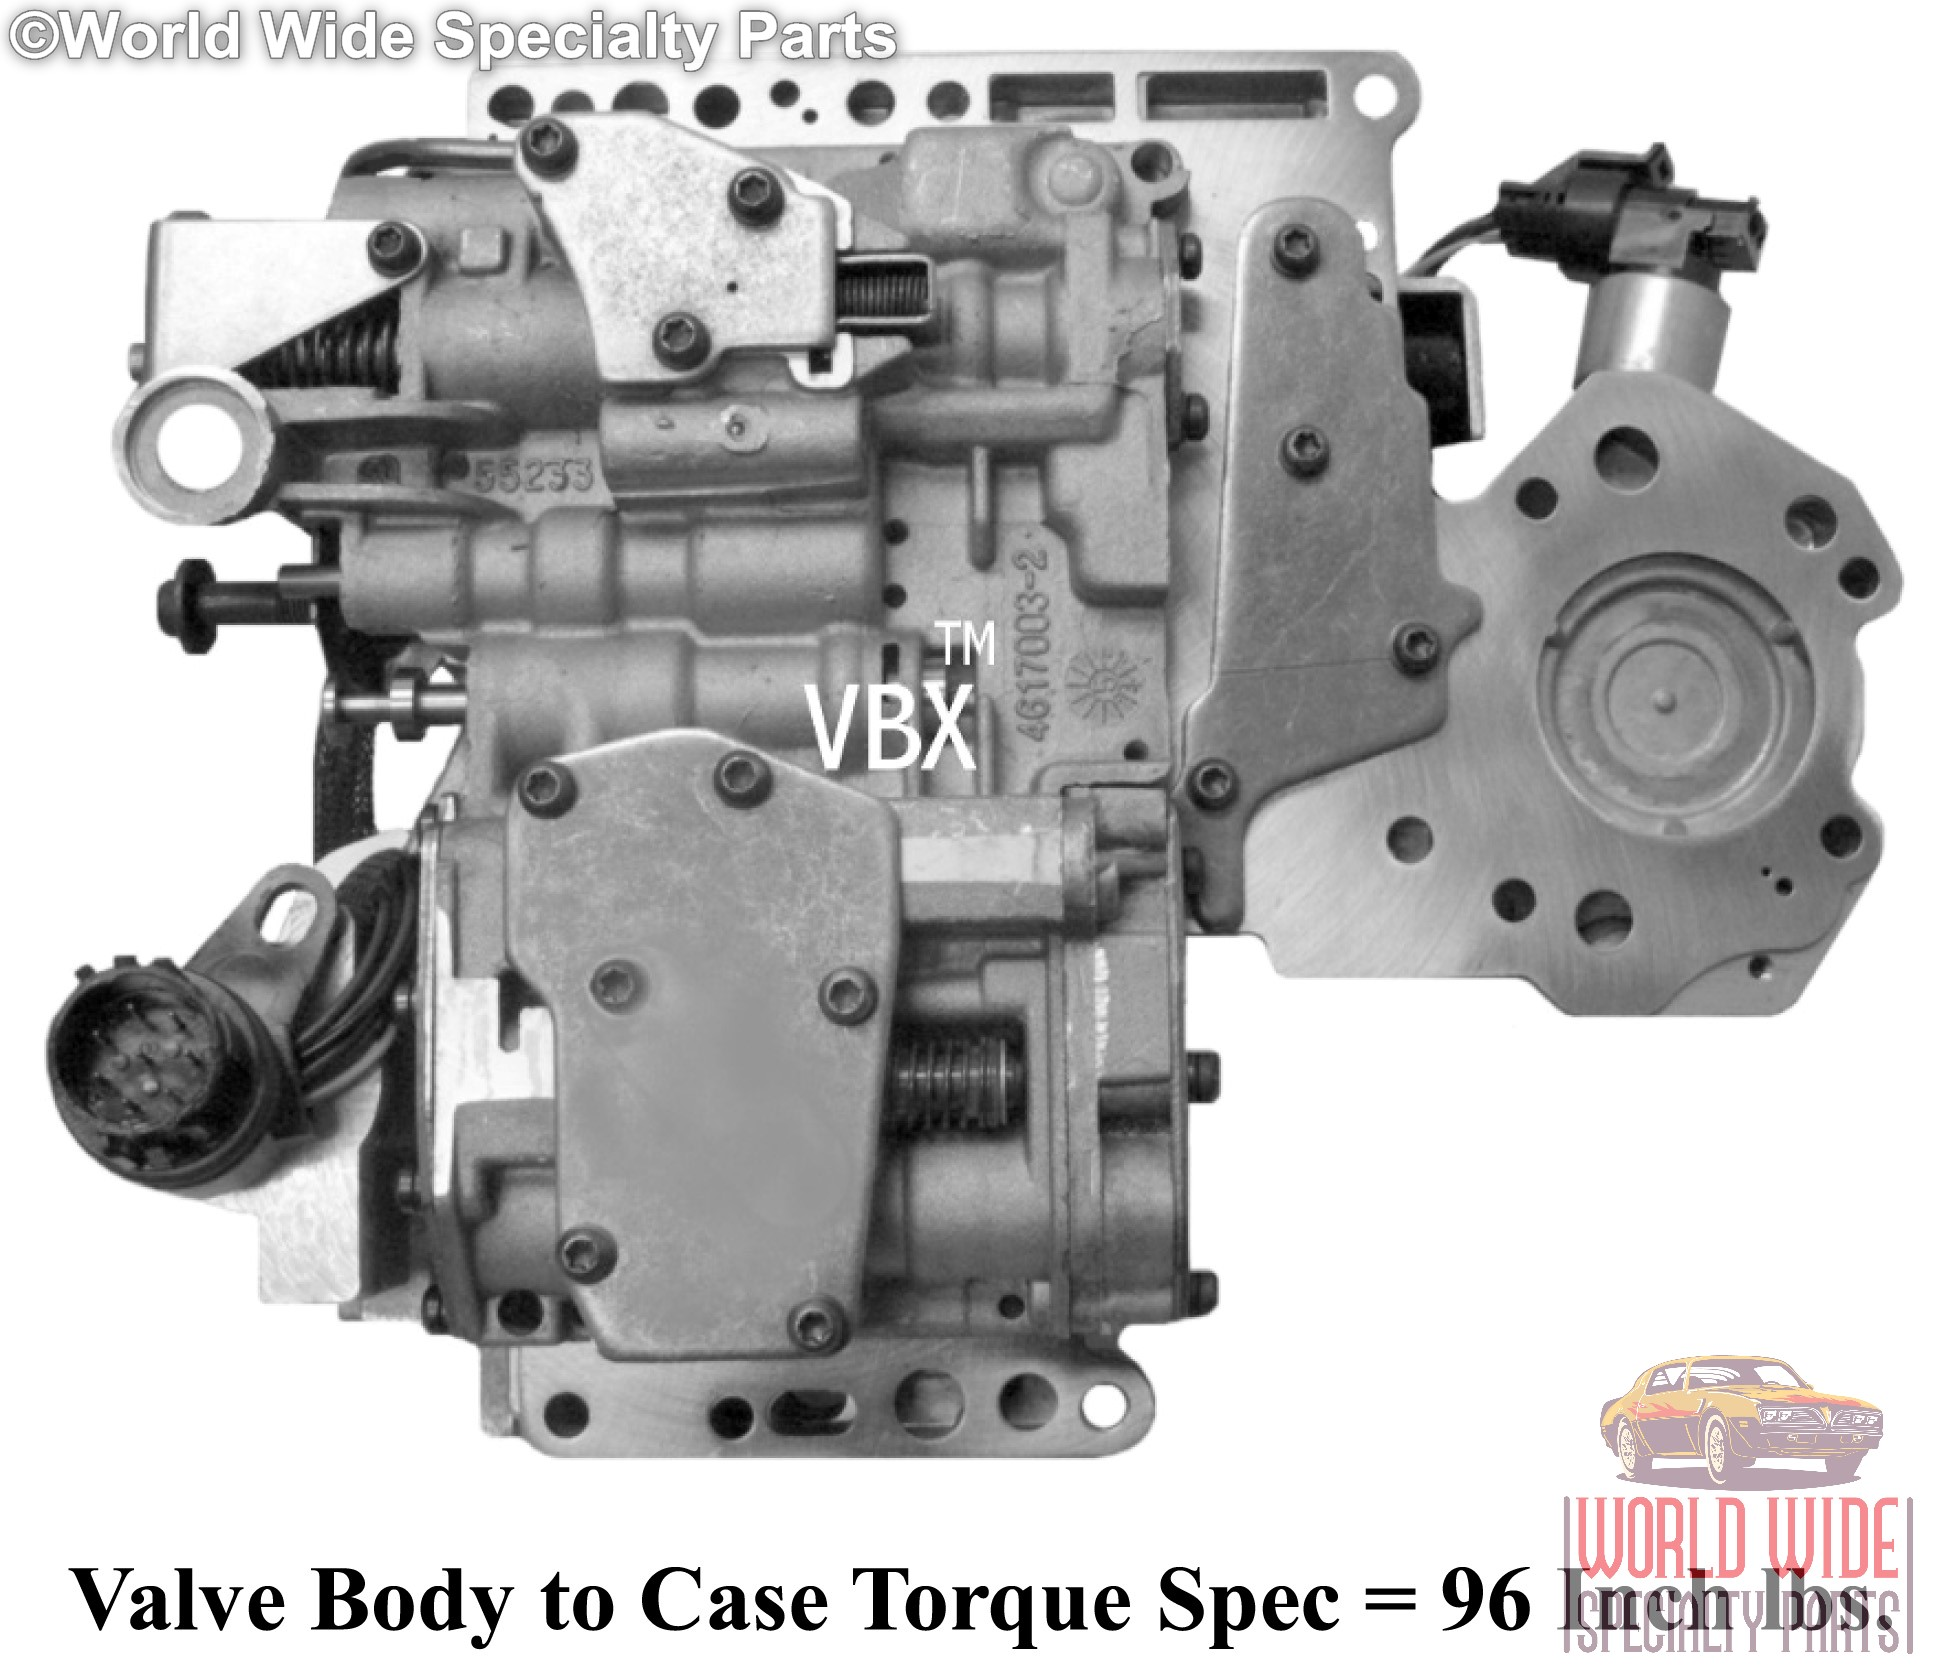 Details about Chrysler 46RE, 47RE Valve Body 1995-1999, Small Pump Inlet (1  YEAR WARRANTY)